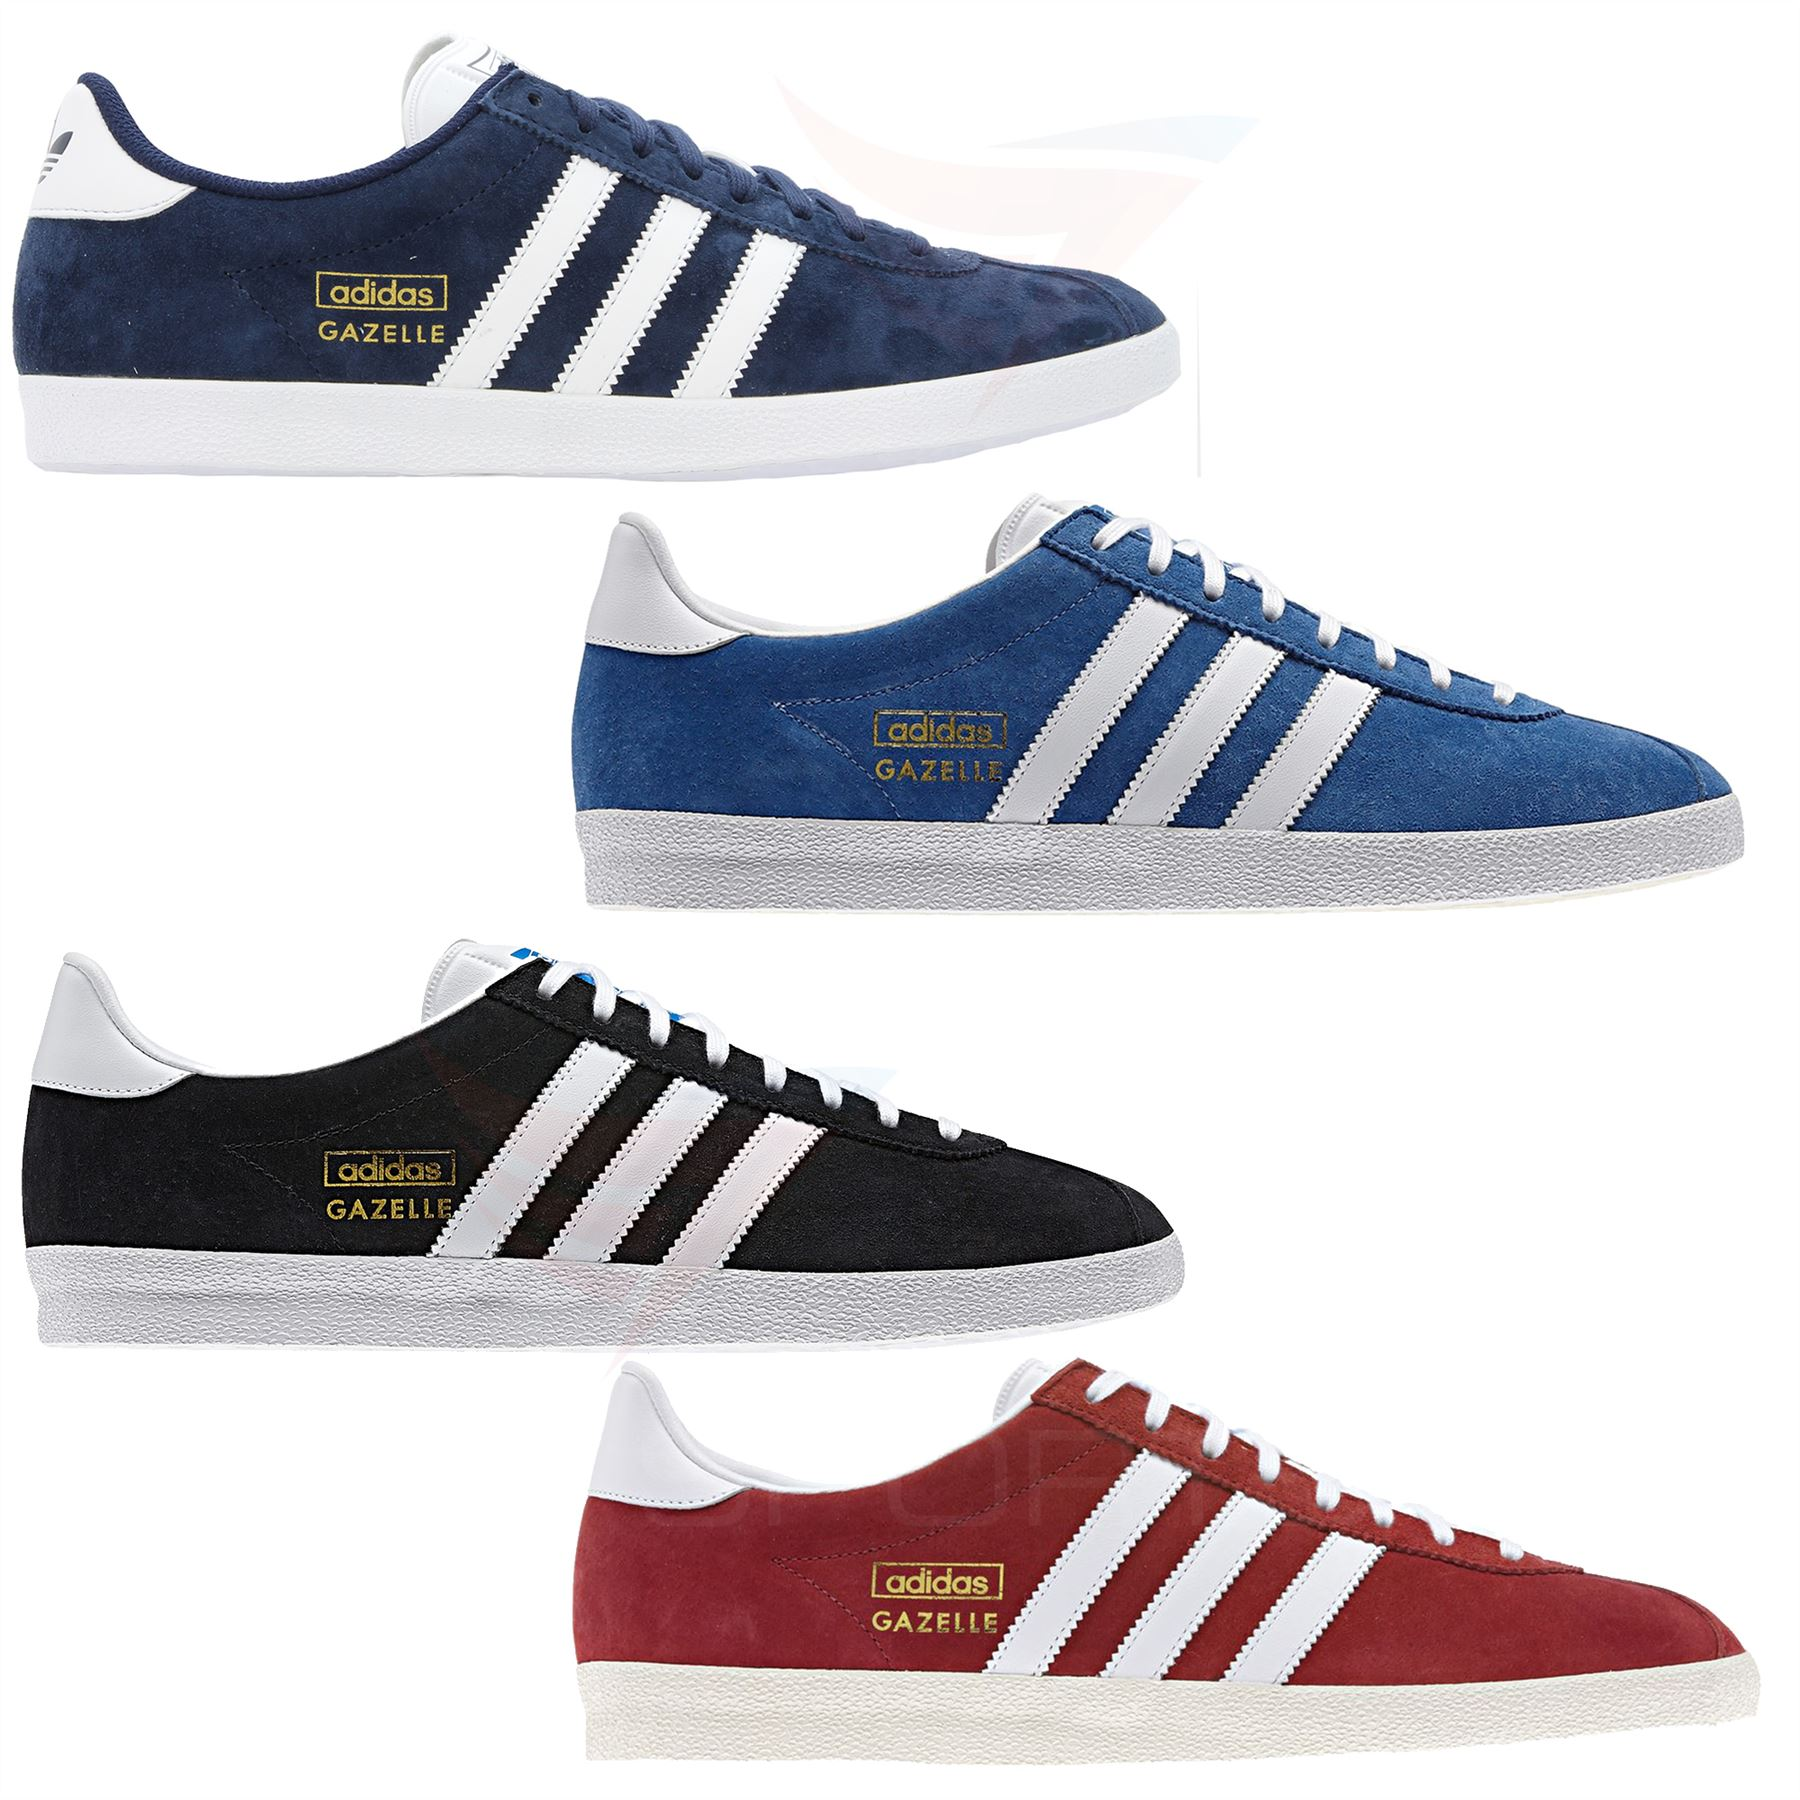 Adidas gazelle adidas sneakers men gap Dis Originals GAZELLE BB5497 shoes black black originals